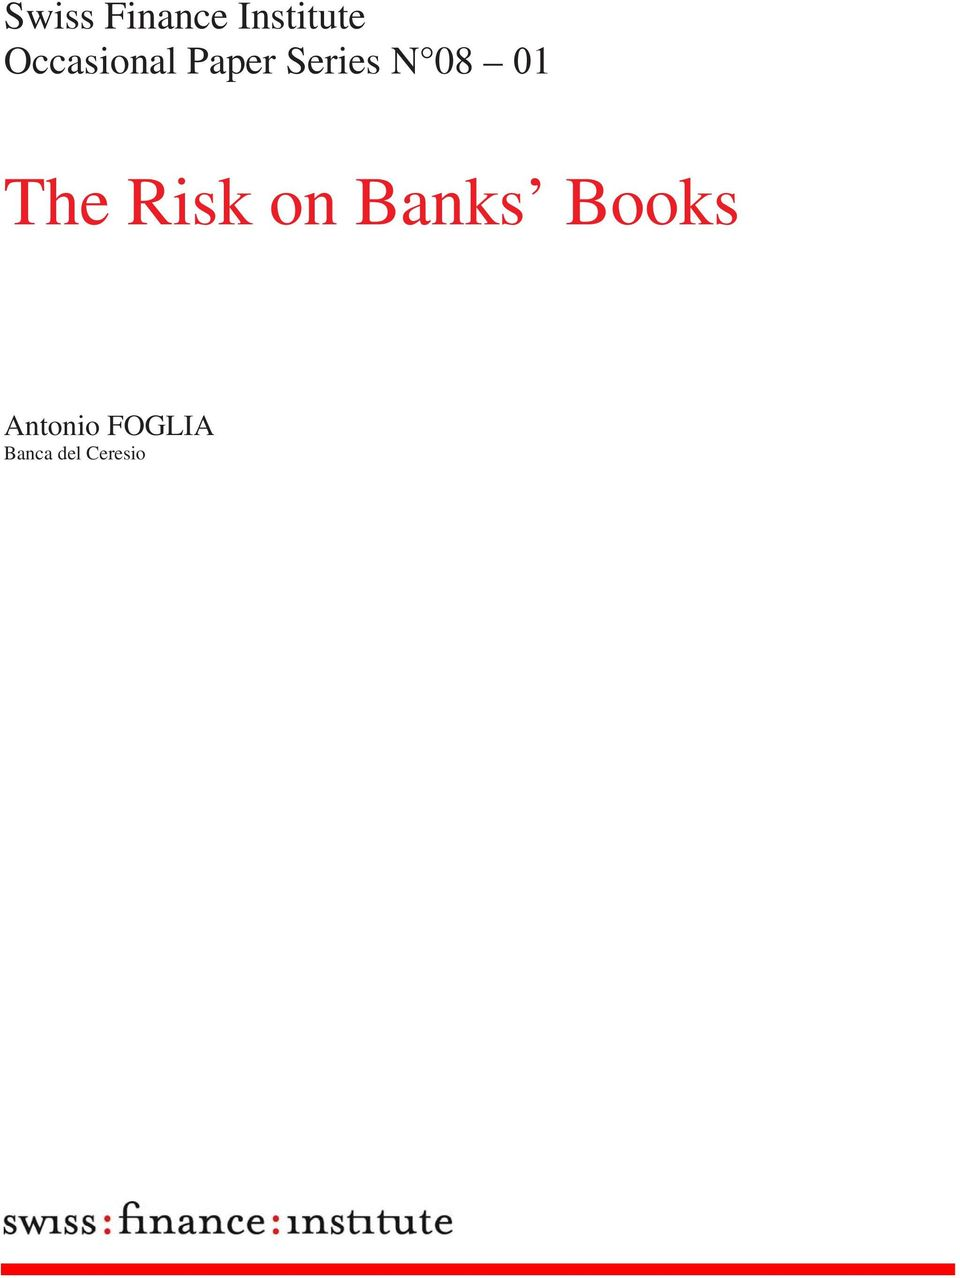 08 01 The Risk on Banks